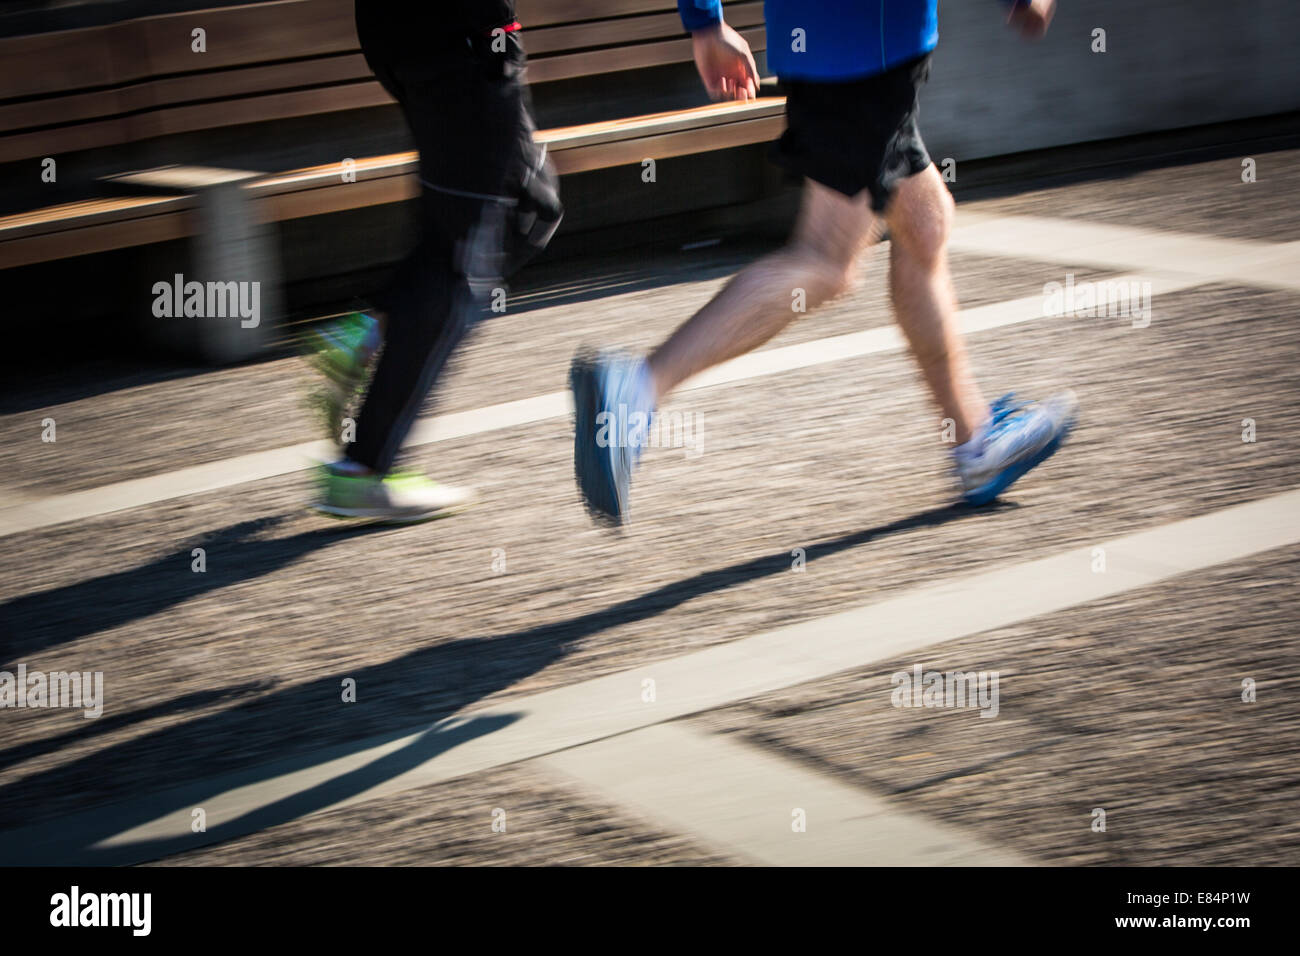 Motion blurred runner's feet in a city environment (panning technique used - motion blurred image; color toned - Stock Image